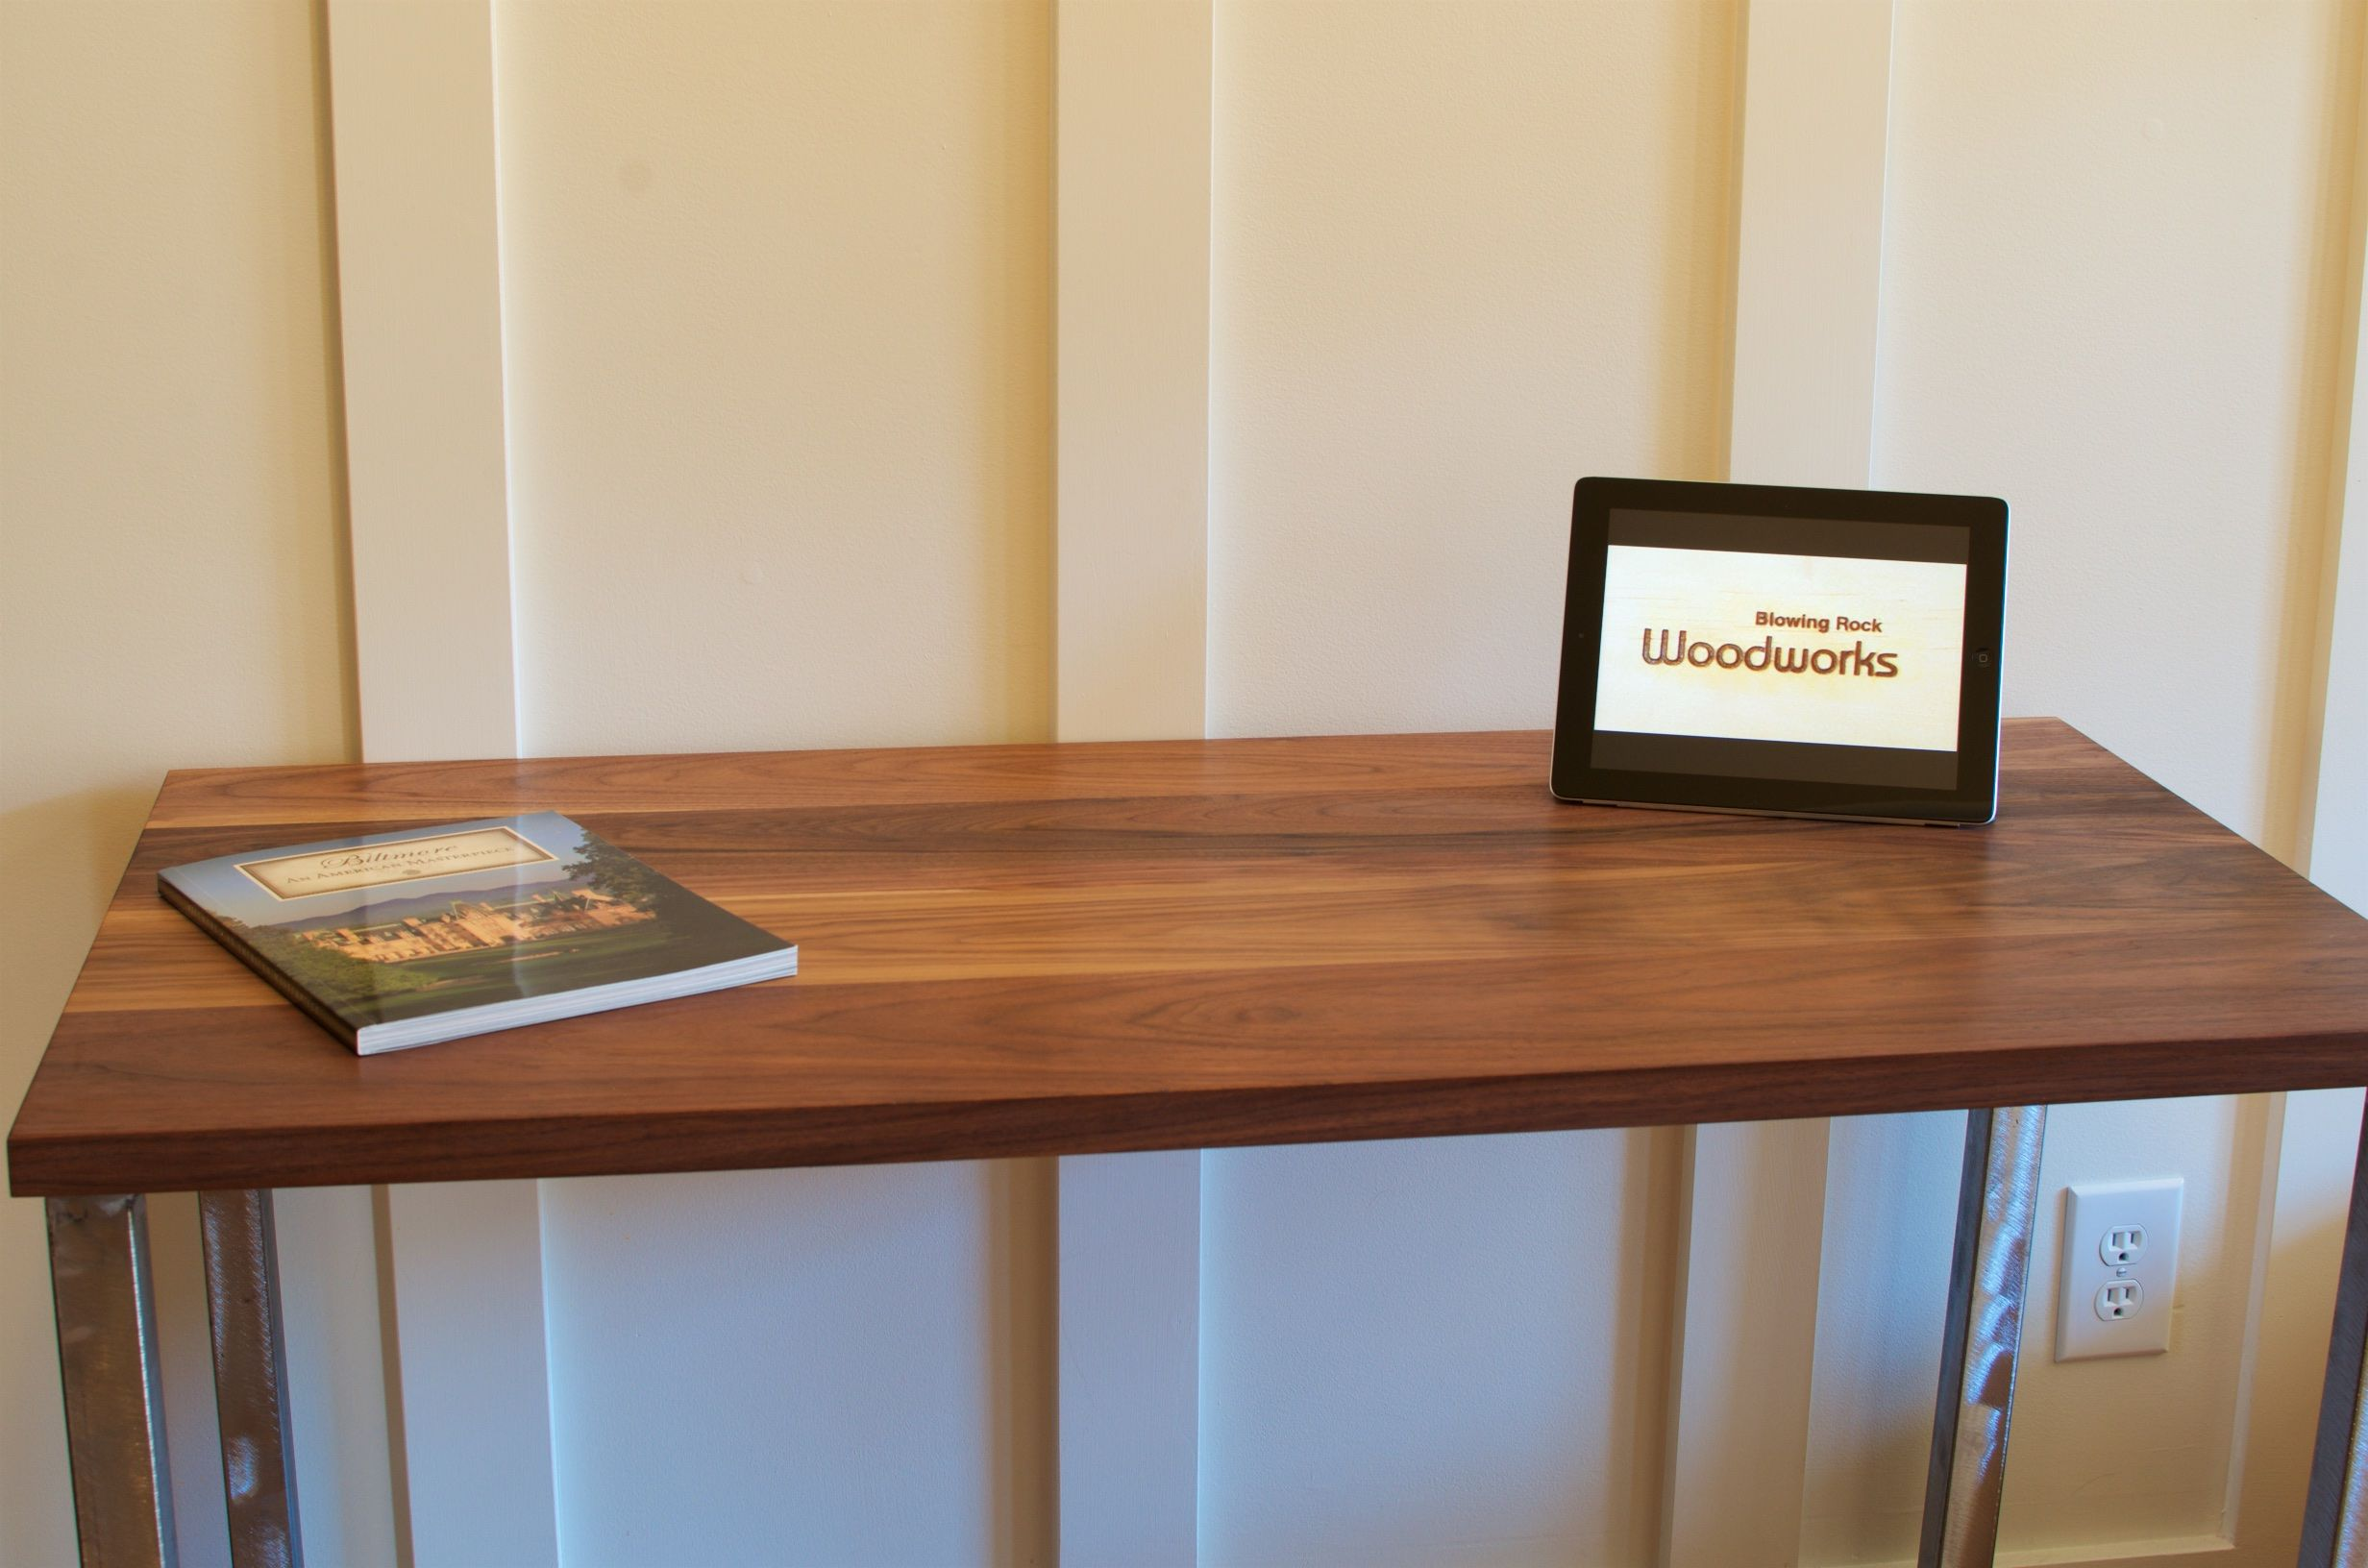 Wooden Desk Designs buy handmade walnut wood desk, modern walnut desk, brushed steel